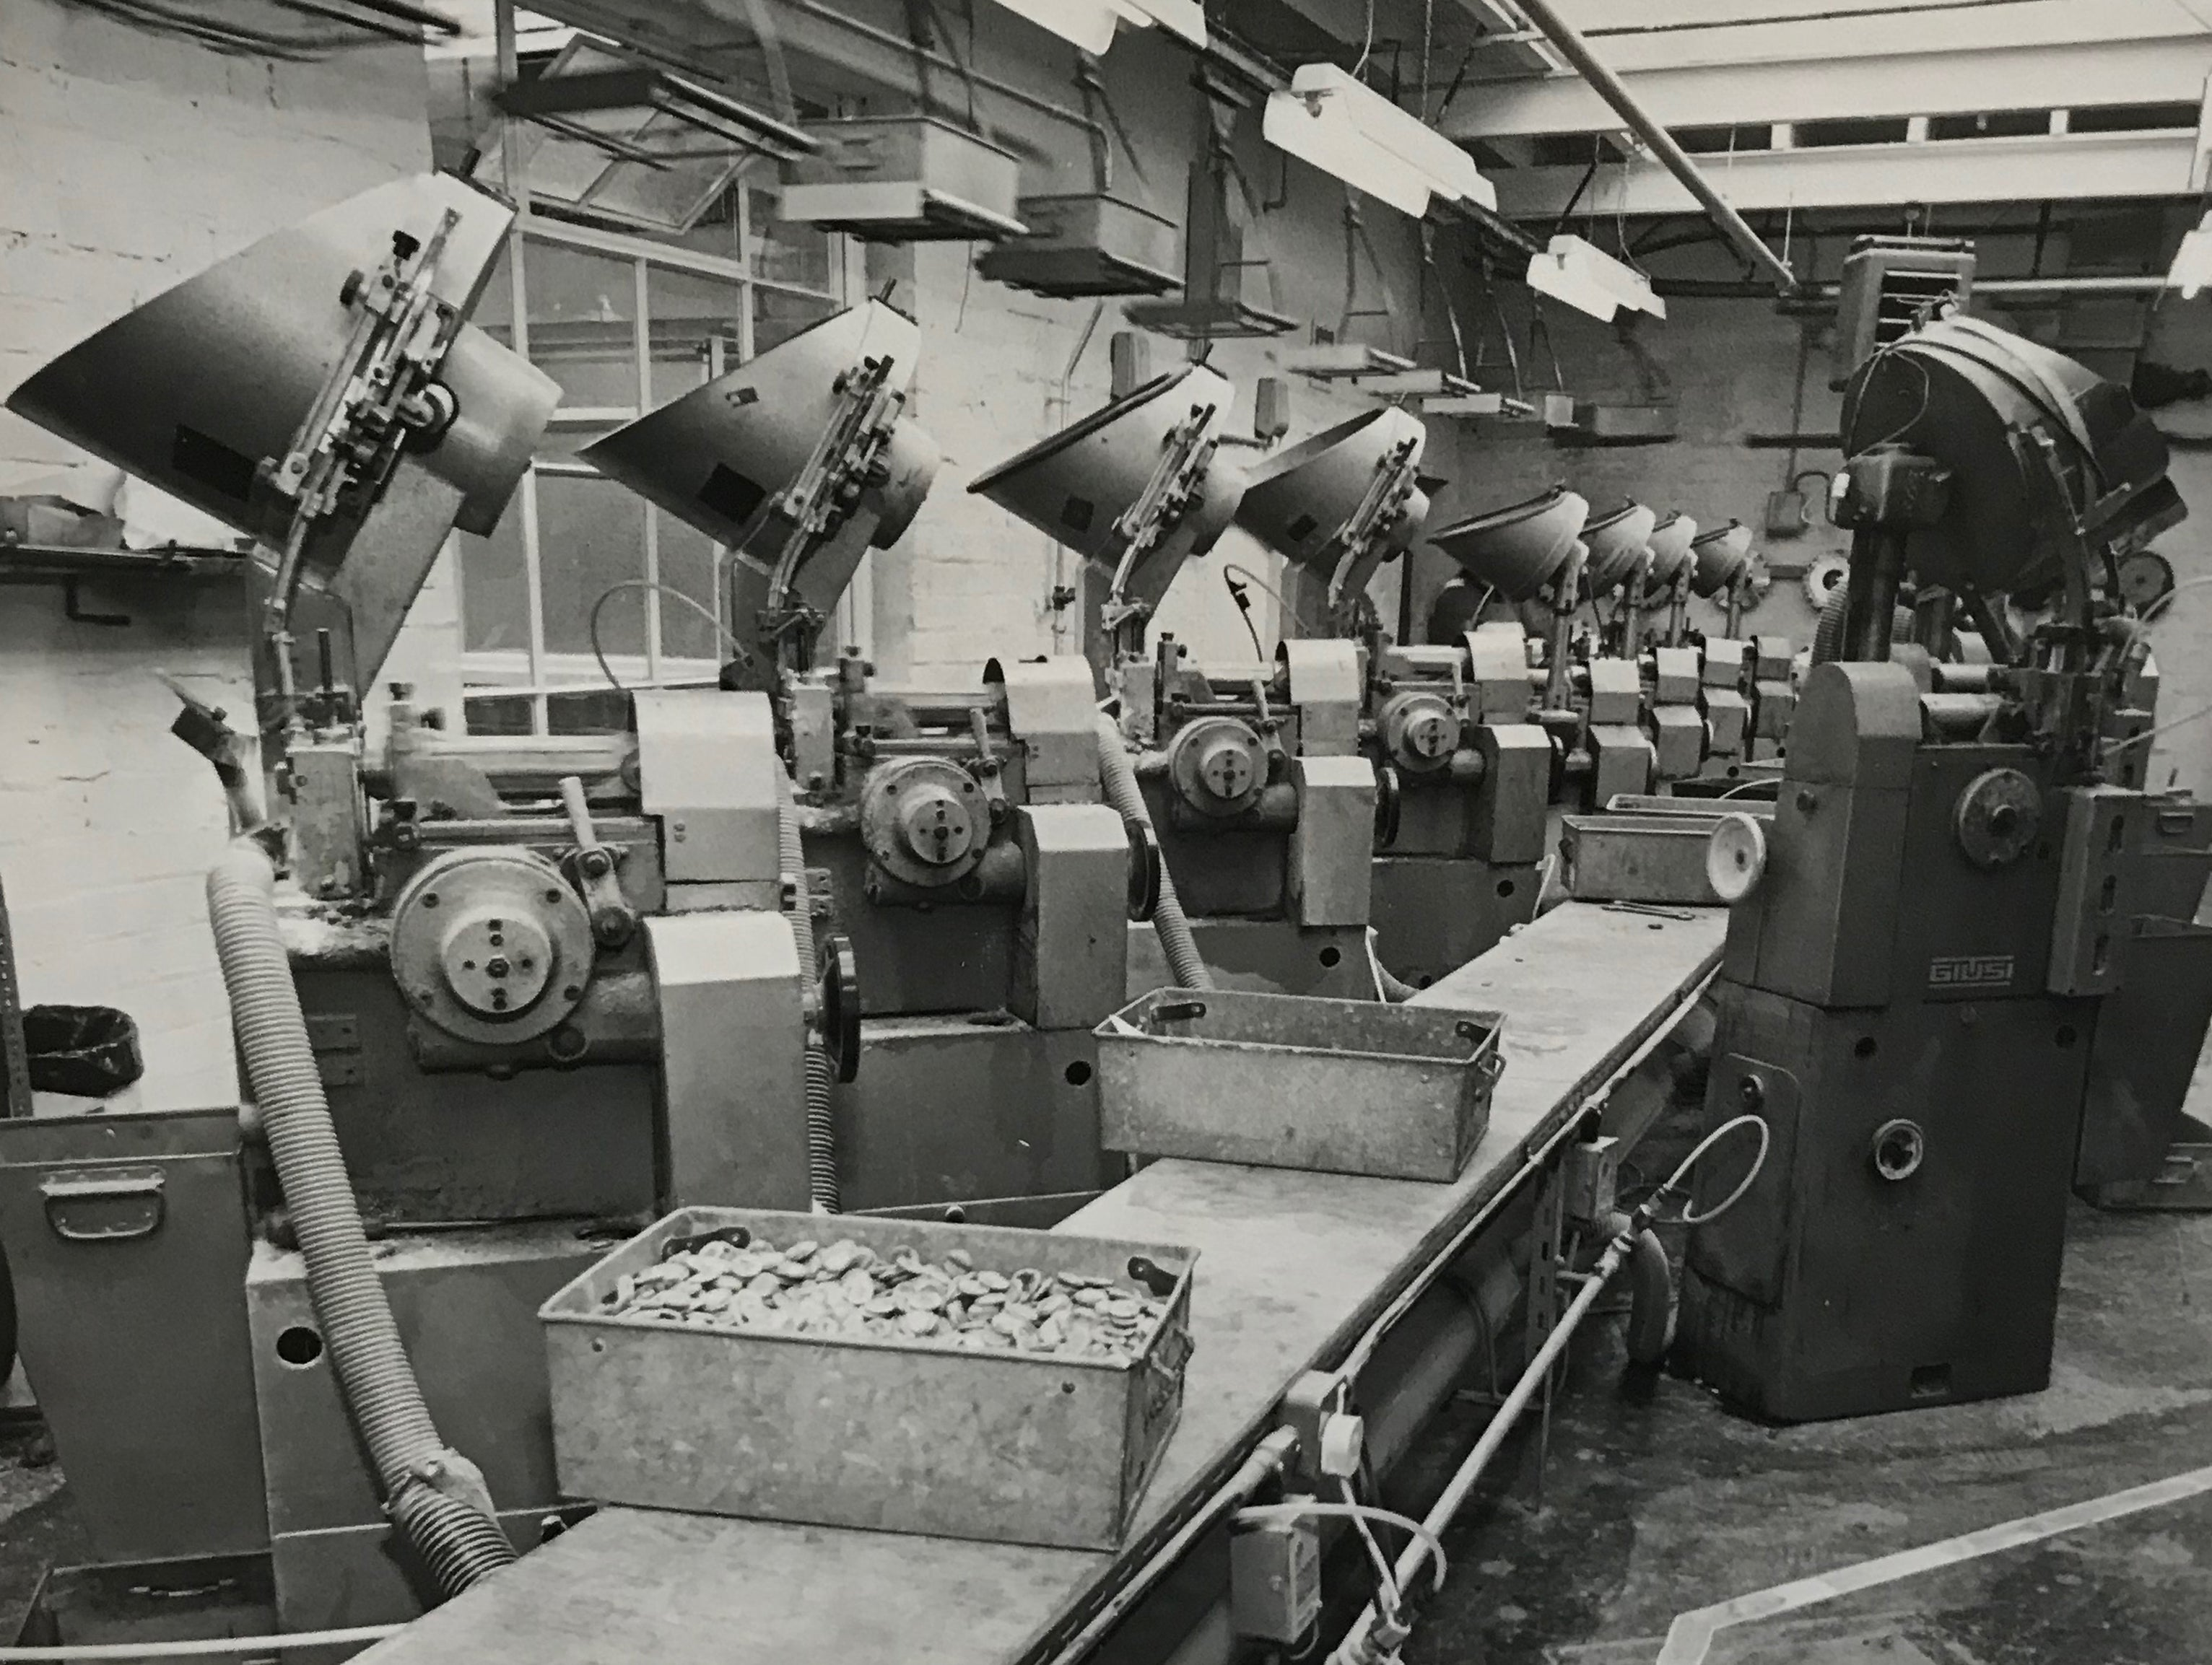 Photo of machinery from the factory floor of James Grove & Sons'.